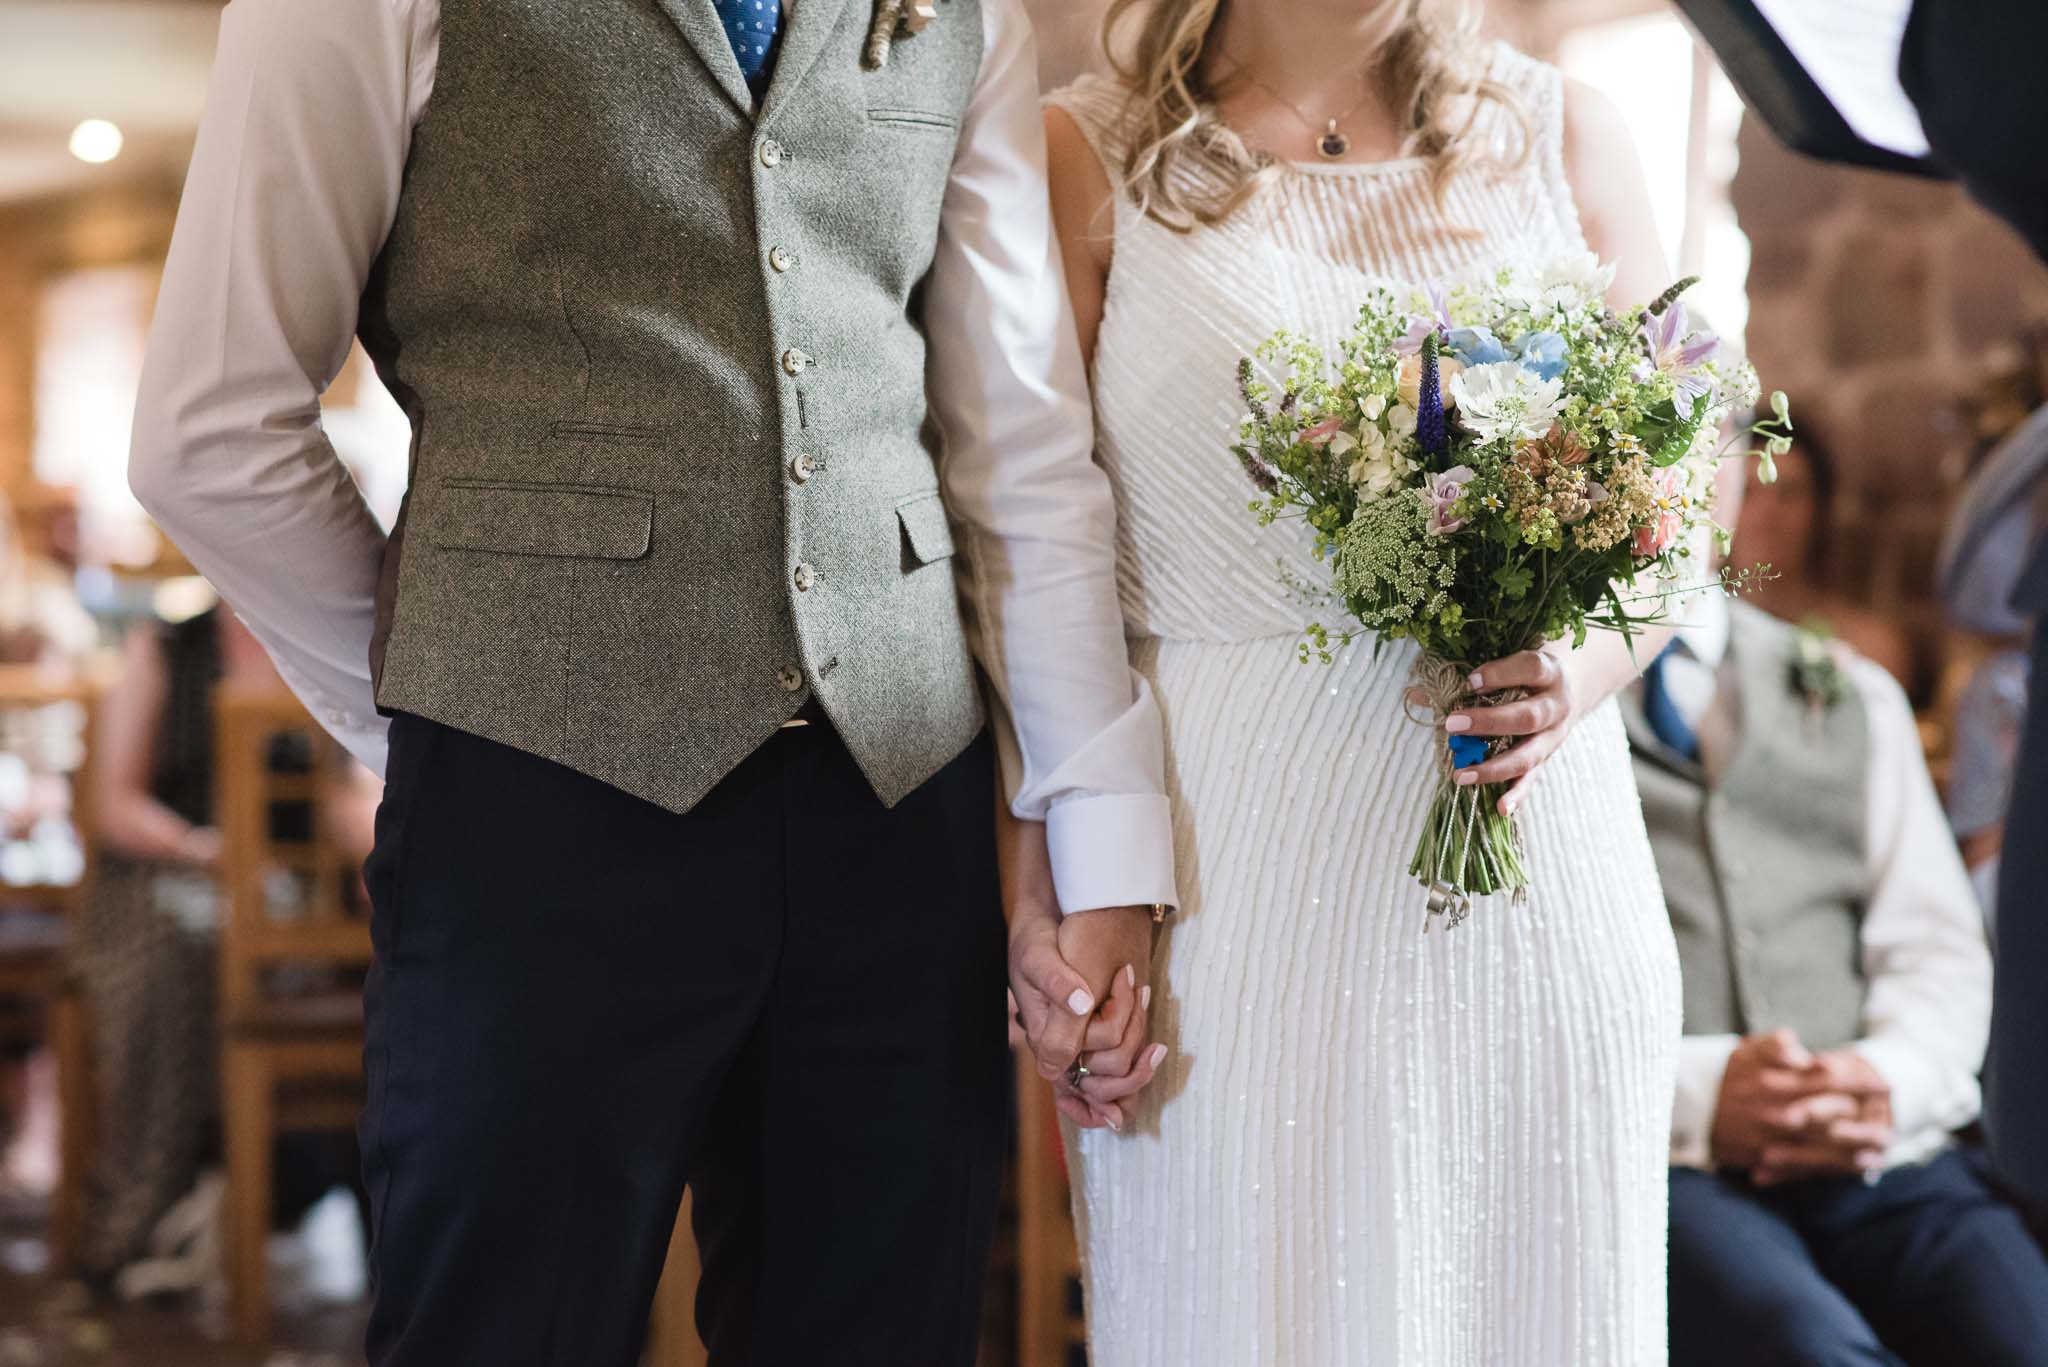 The_Ashes_Barns_Country_House_Wedding_Emma_Hare_Photography_Bev_Nathan-14.jpg